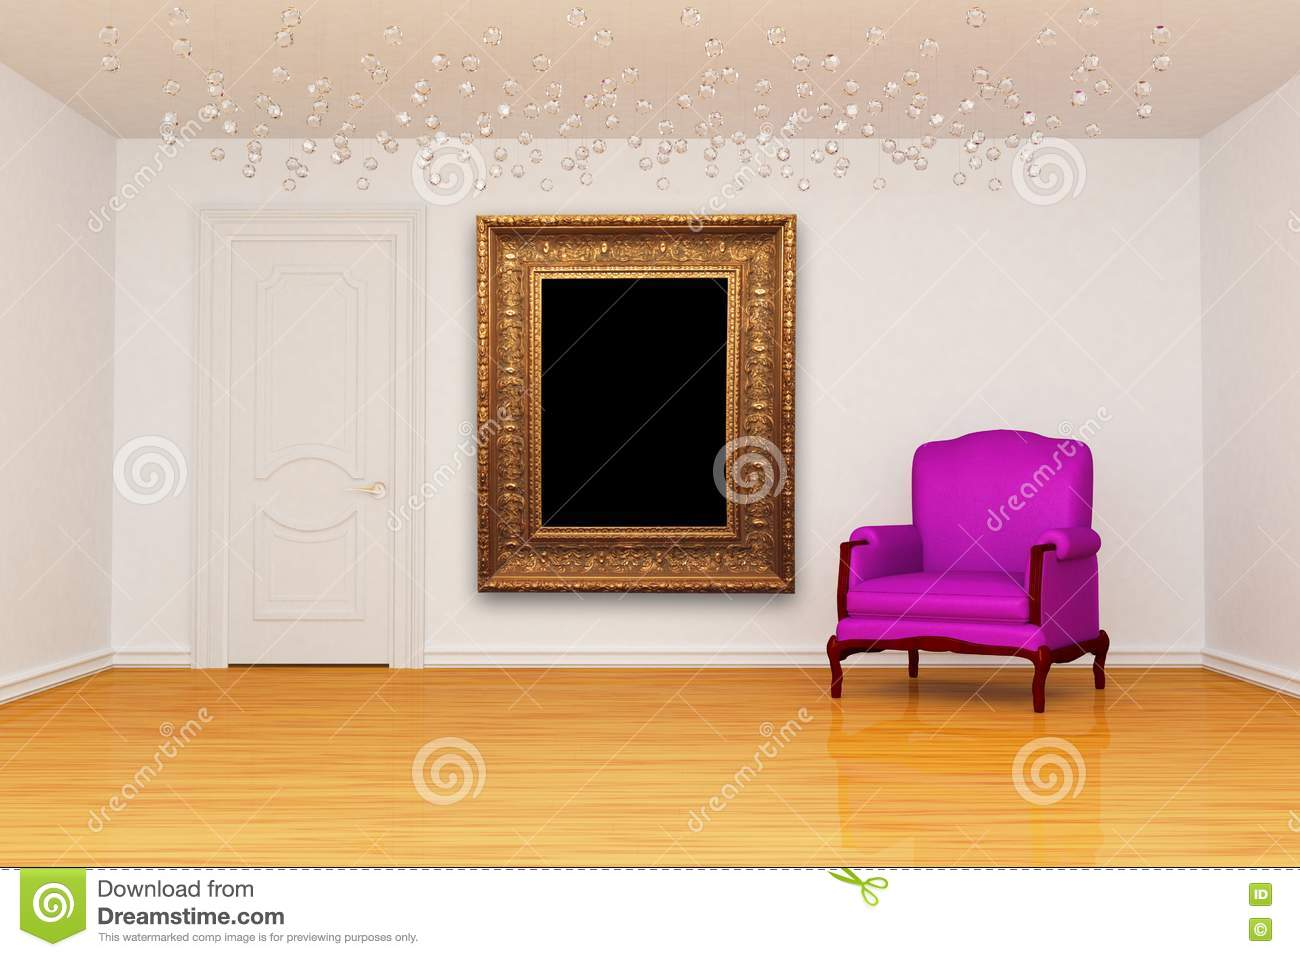 Room with door and chair with frame royalty free stock for Room door frame